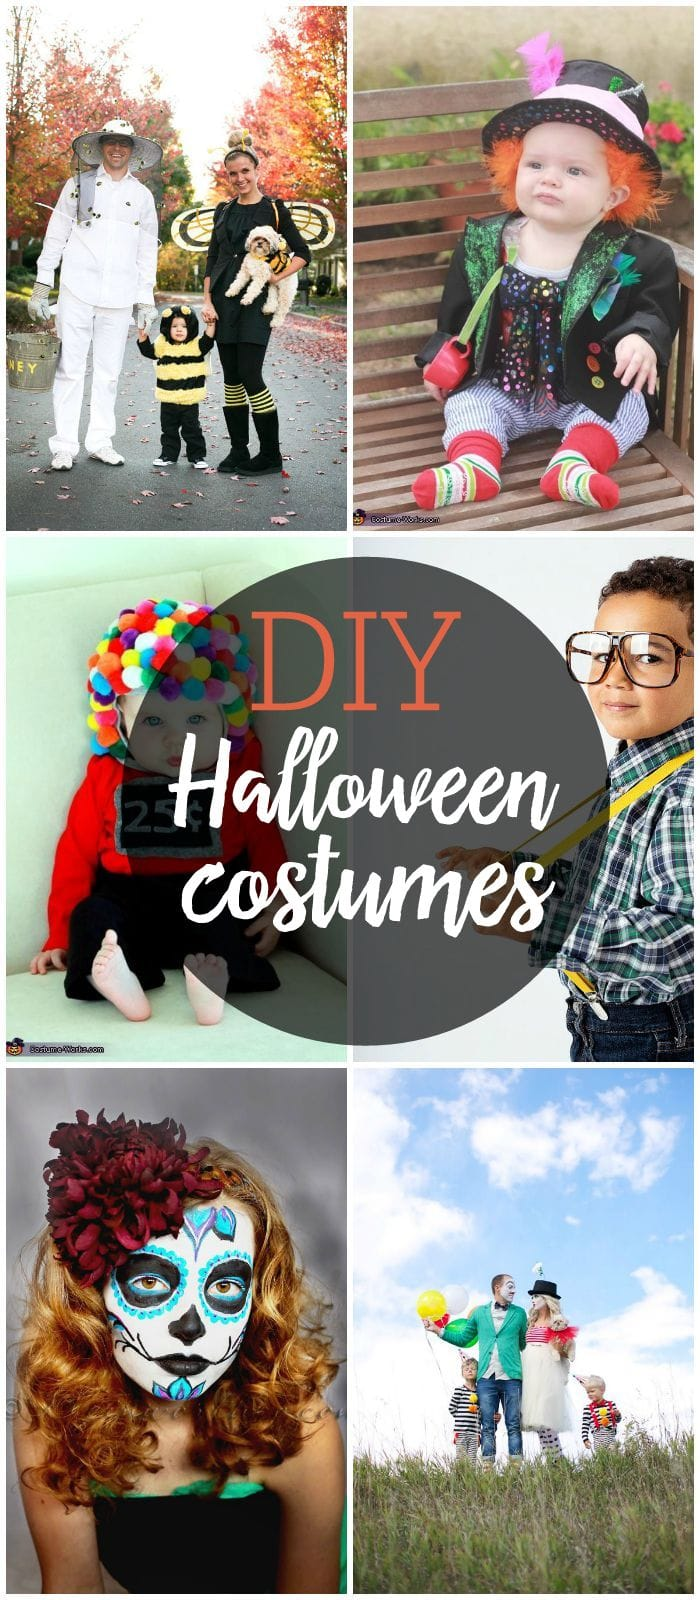 DIY-halloween-costumes-collage